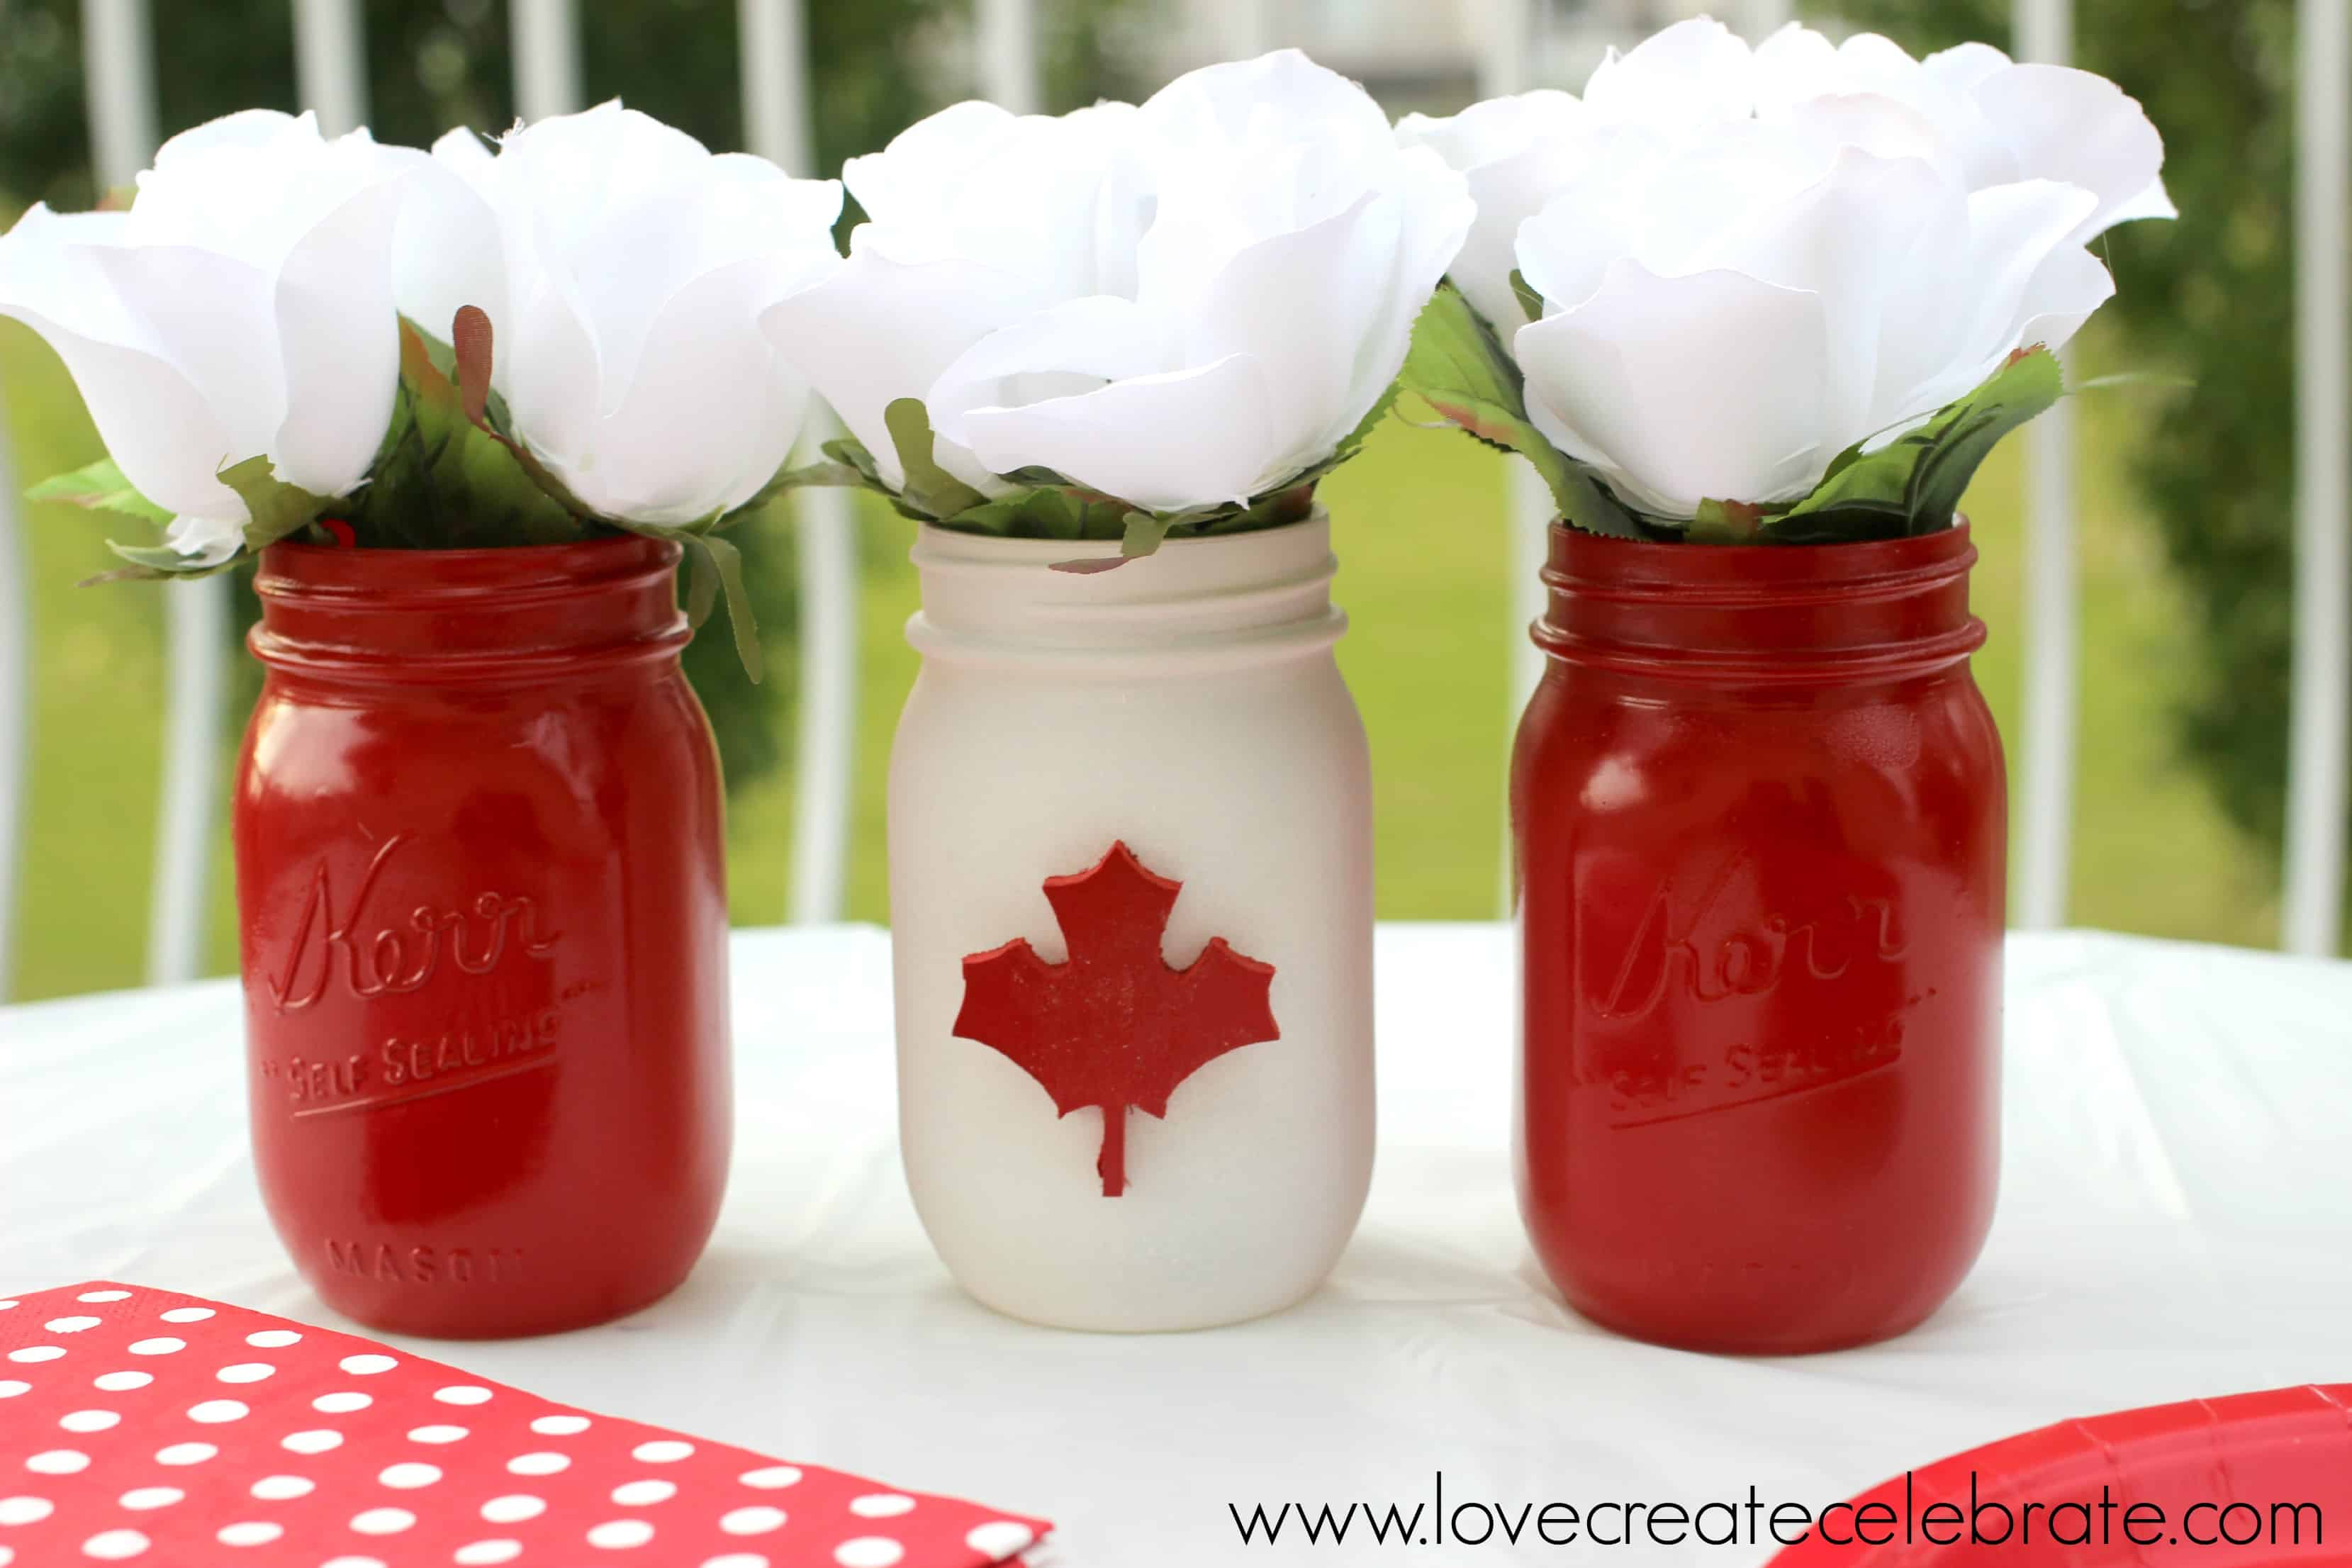 Mason jars painted red, white and red with a red maple leaf on the white painted jar